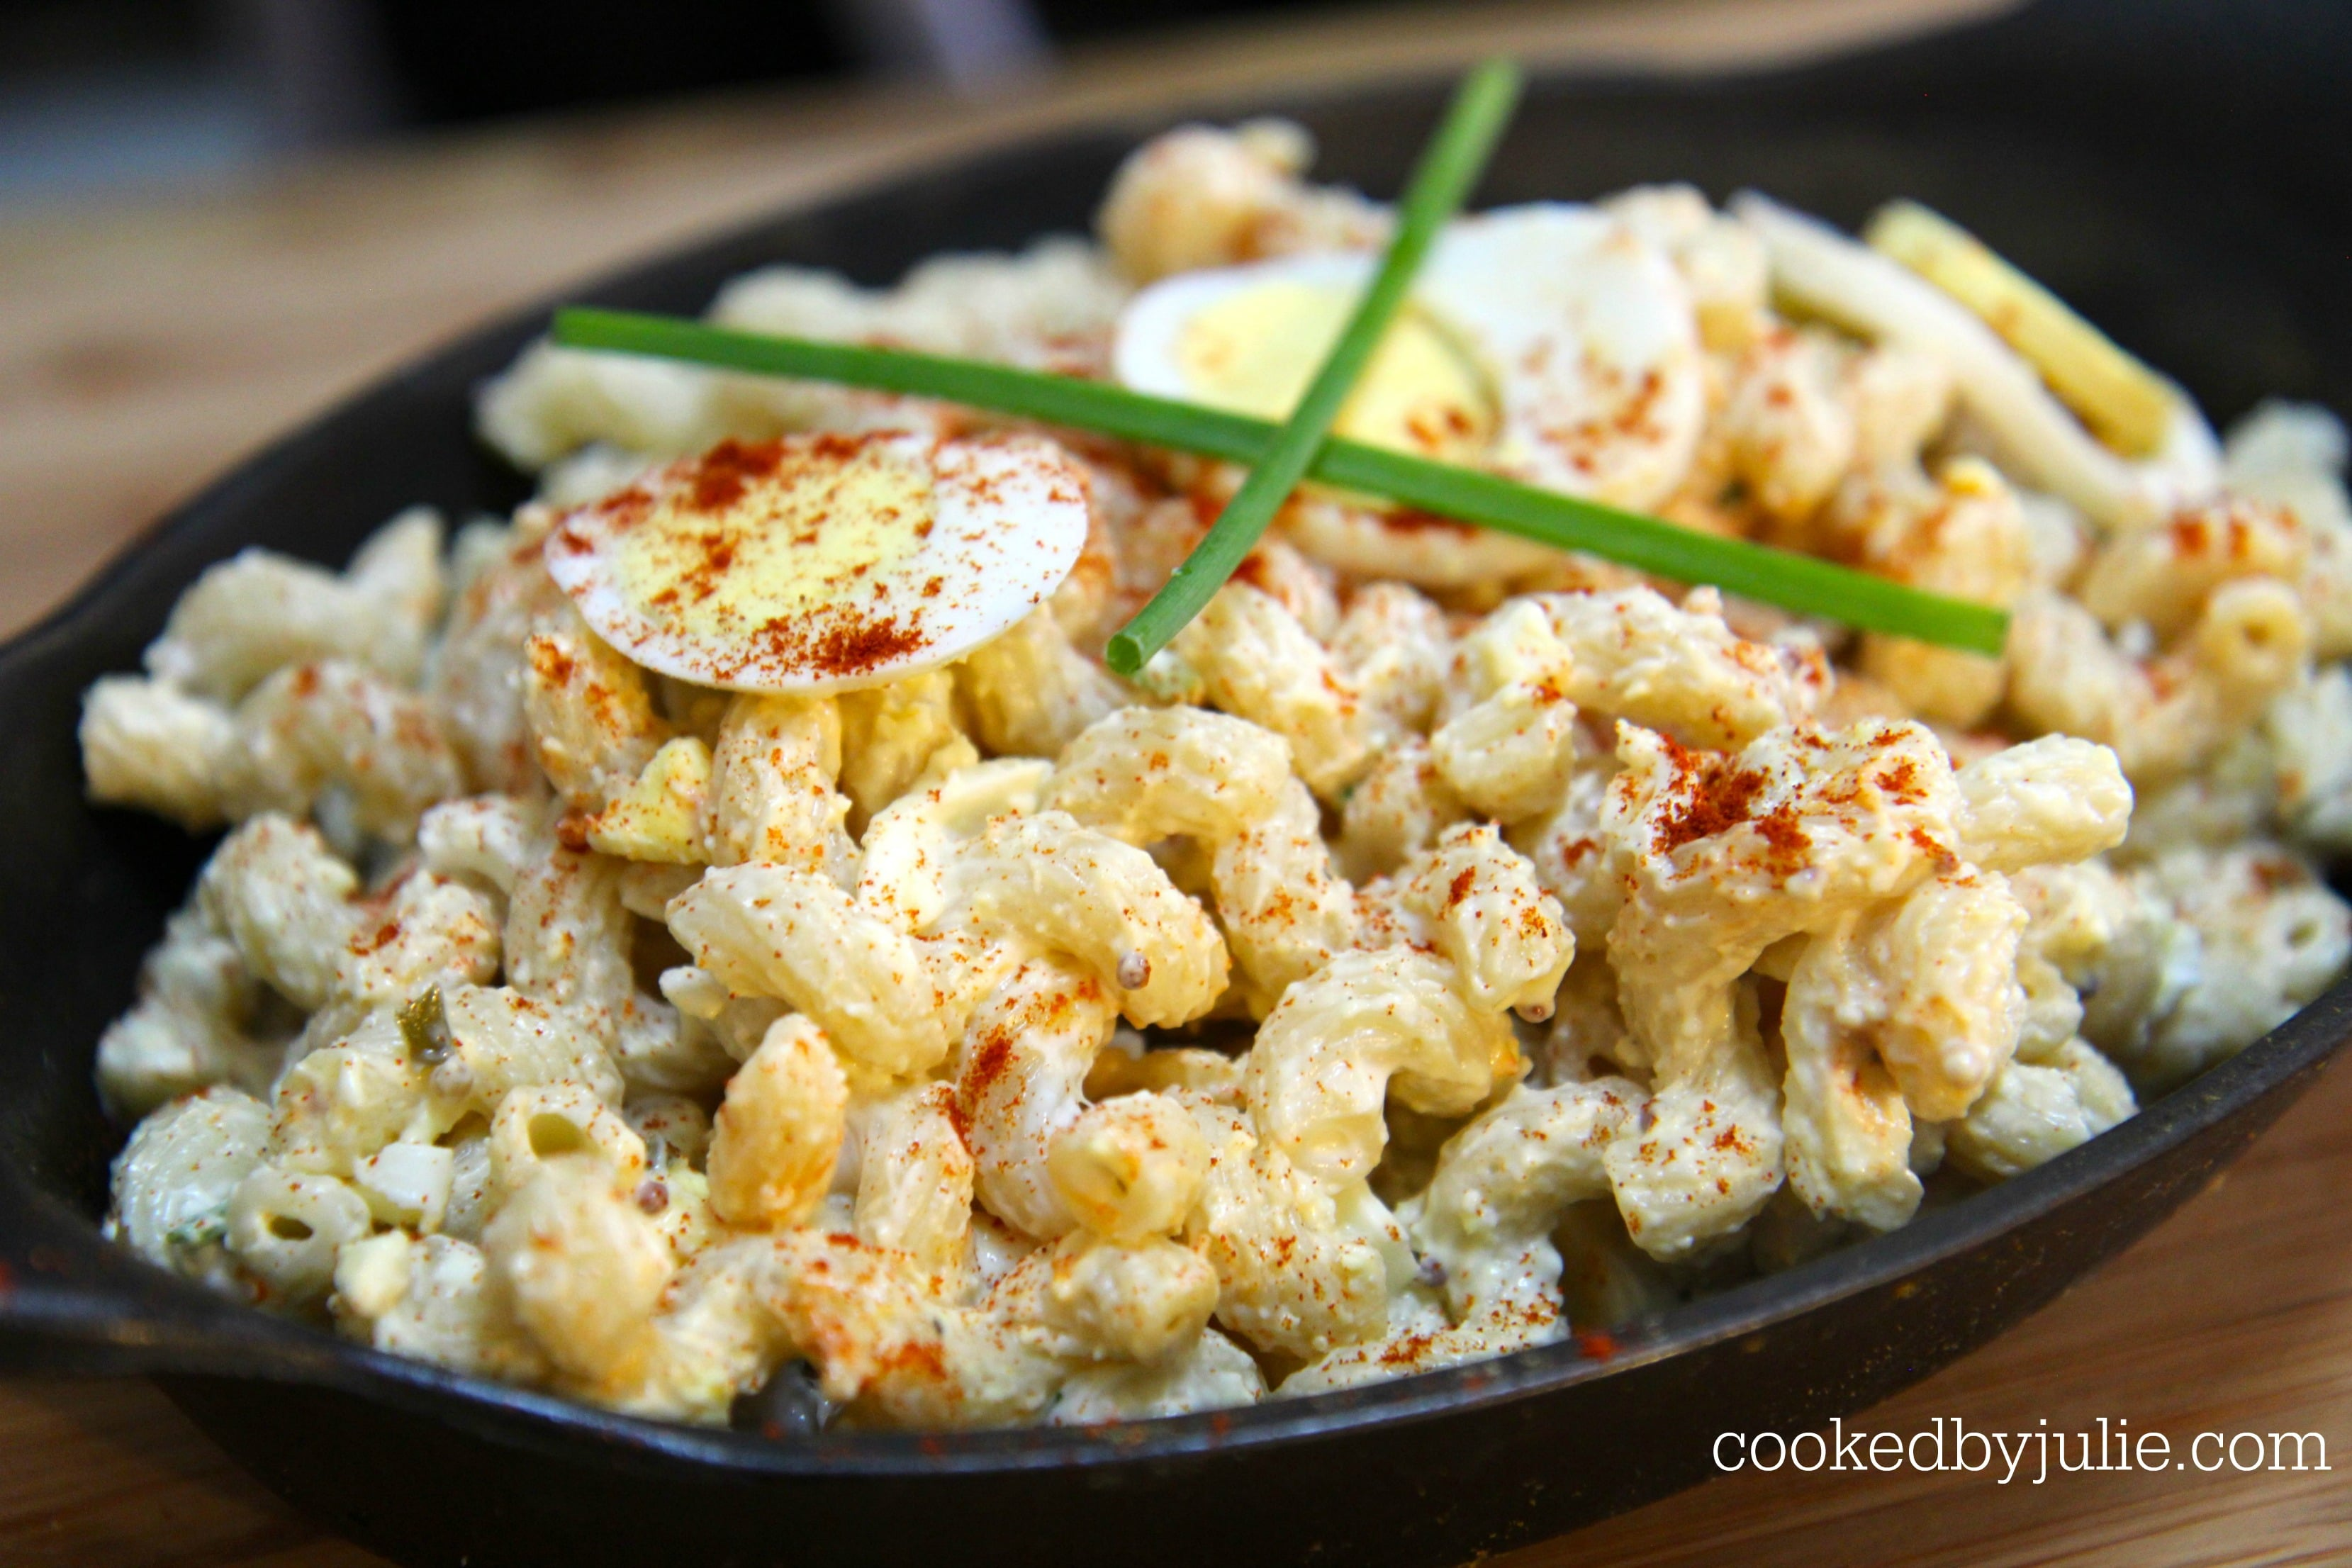 deviled egg pasta salad with hardboiled eggs, paprika, and chives on top.